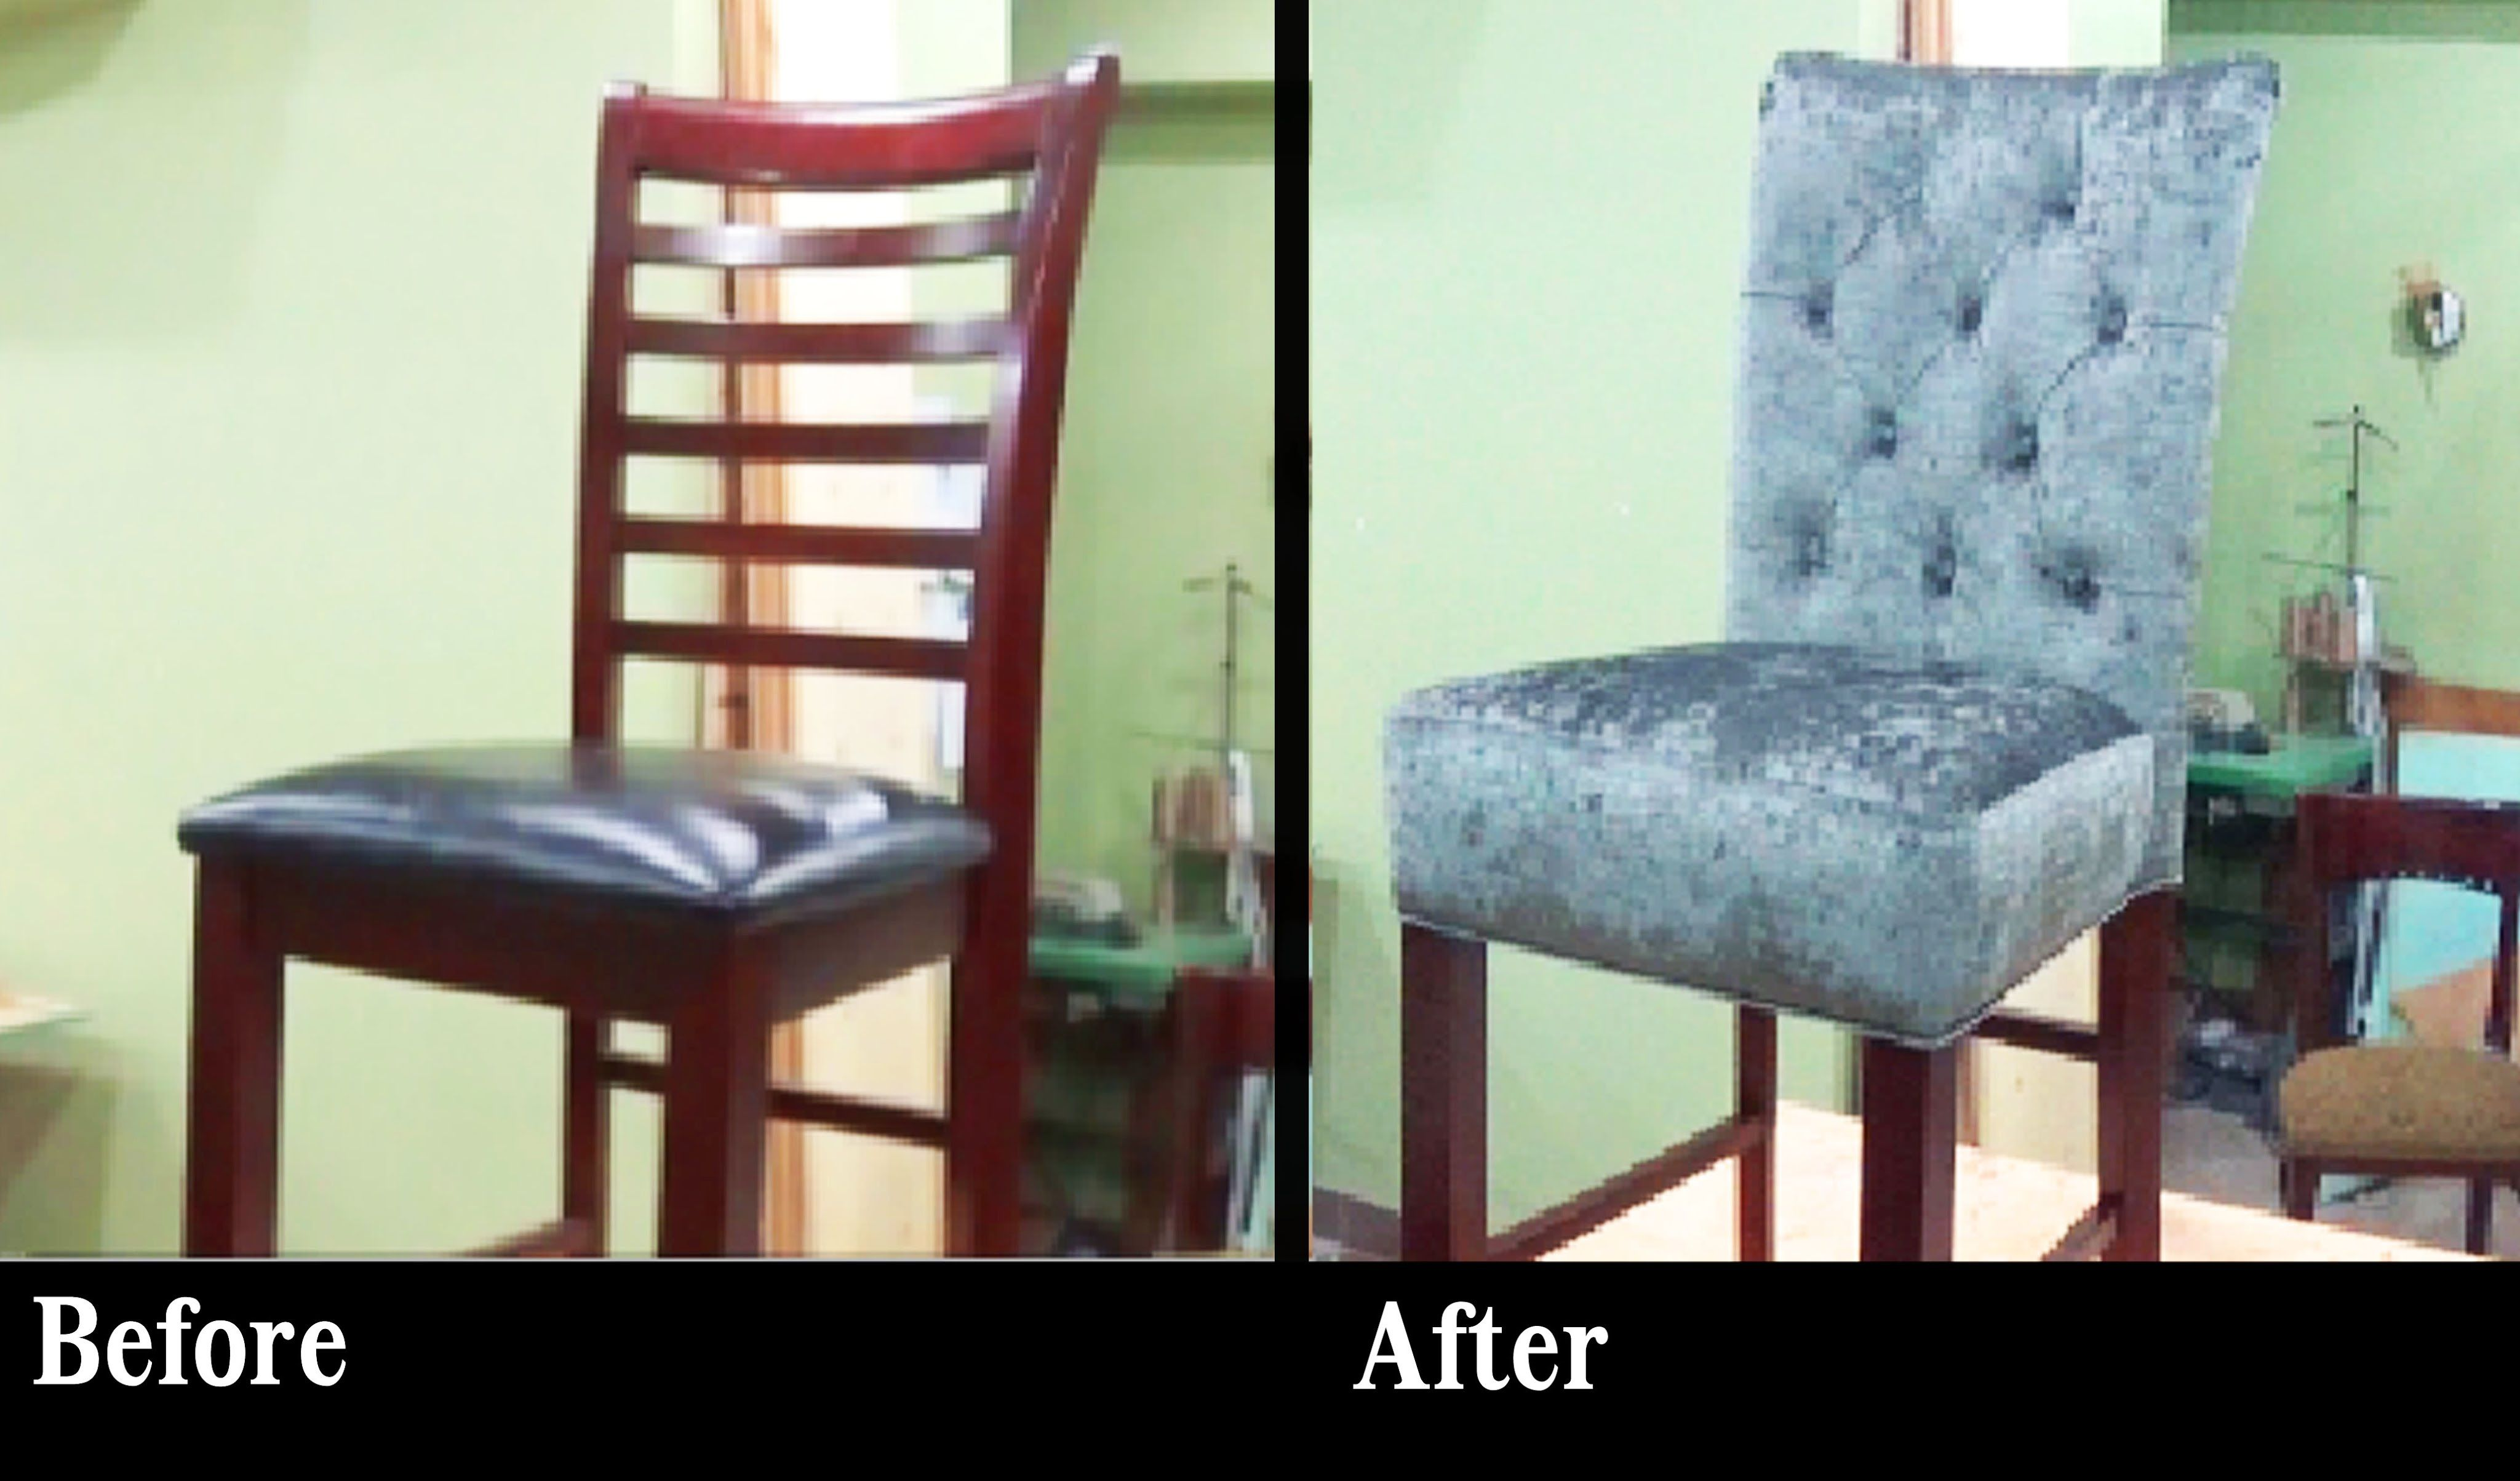 How To Reupholster A Bar Stool With A Built In Seat Alo Upholstery Stuhle Beziehen Mobel Restaurieren Wohnen